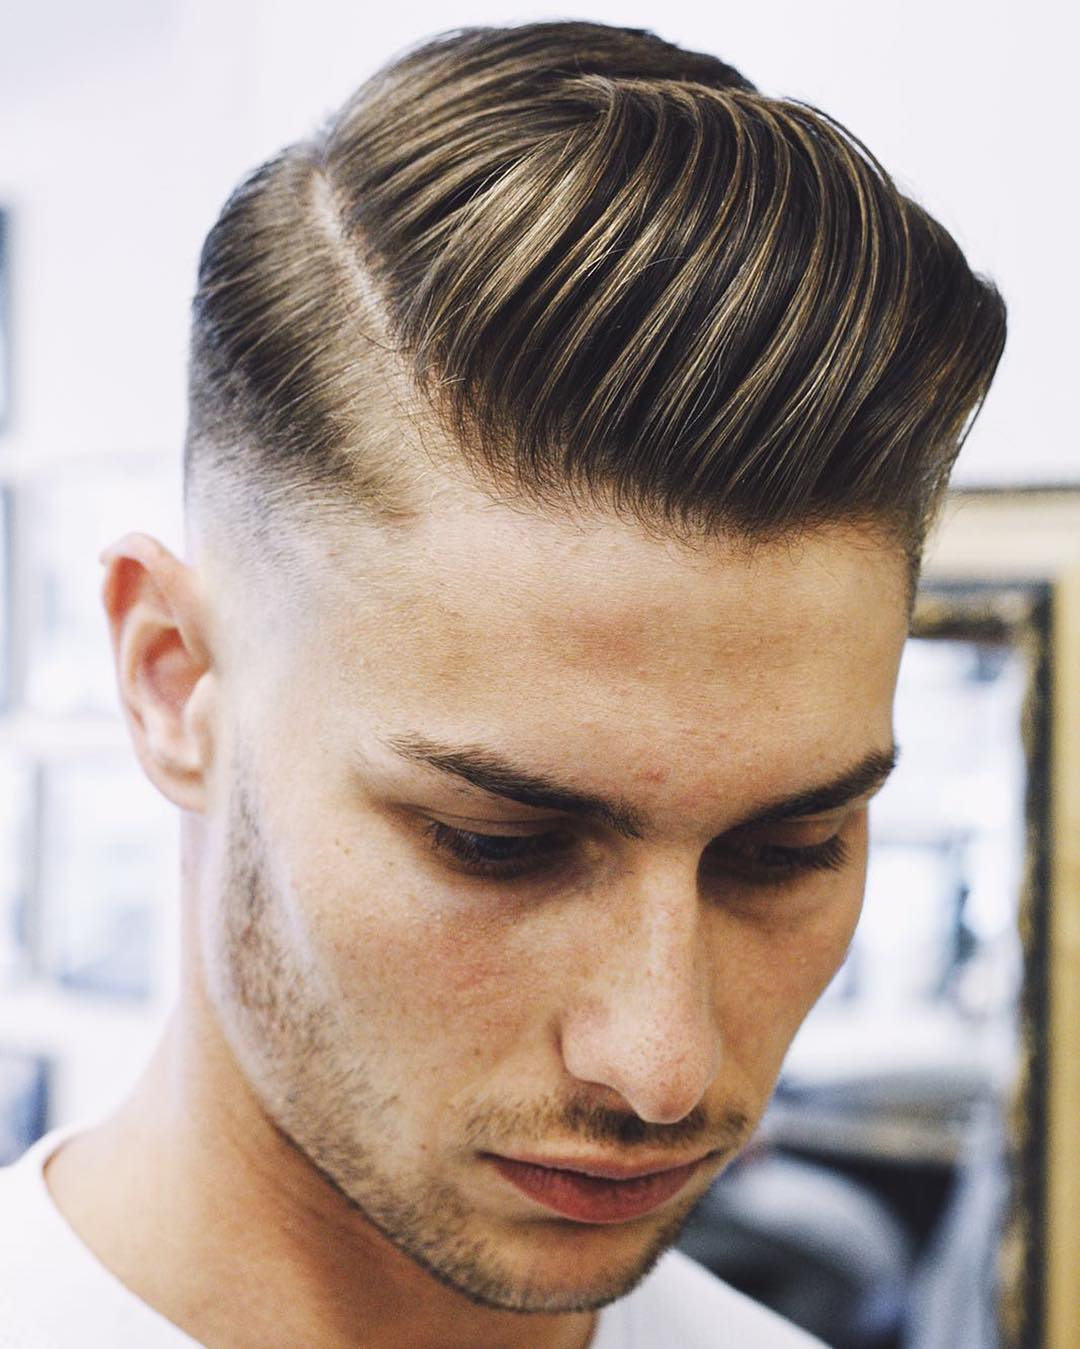 Top 35 Popular Men S Haircuts Hairstyles For Men 2019: 25 Popular Haircuts For Men 2019